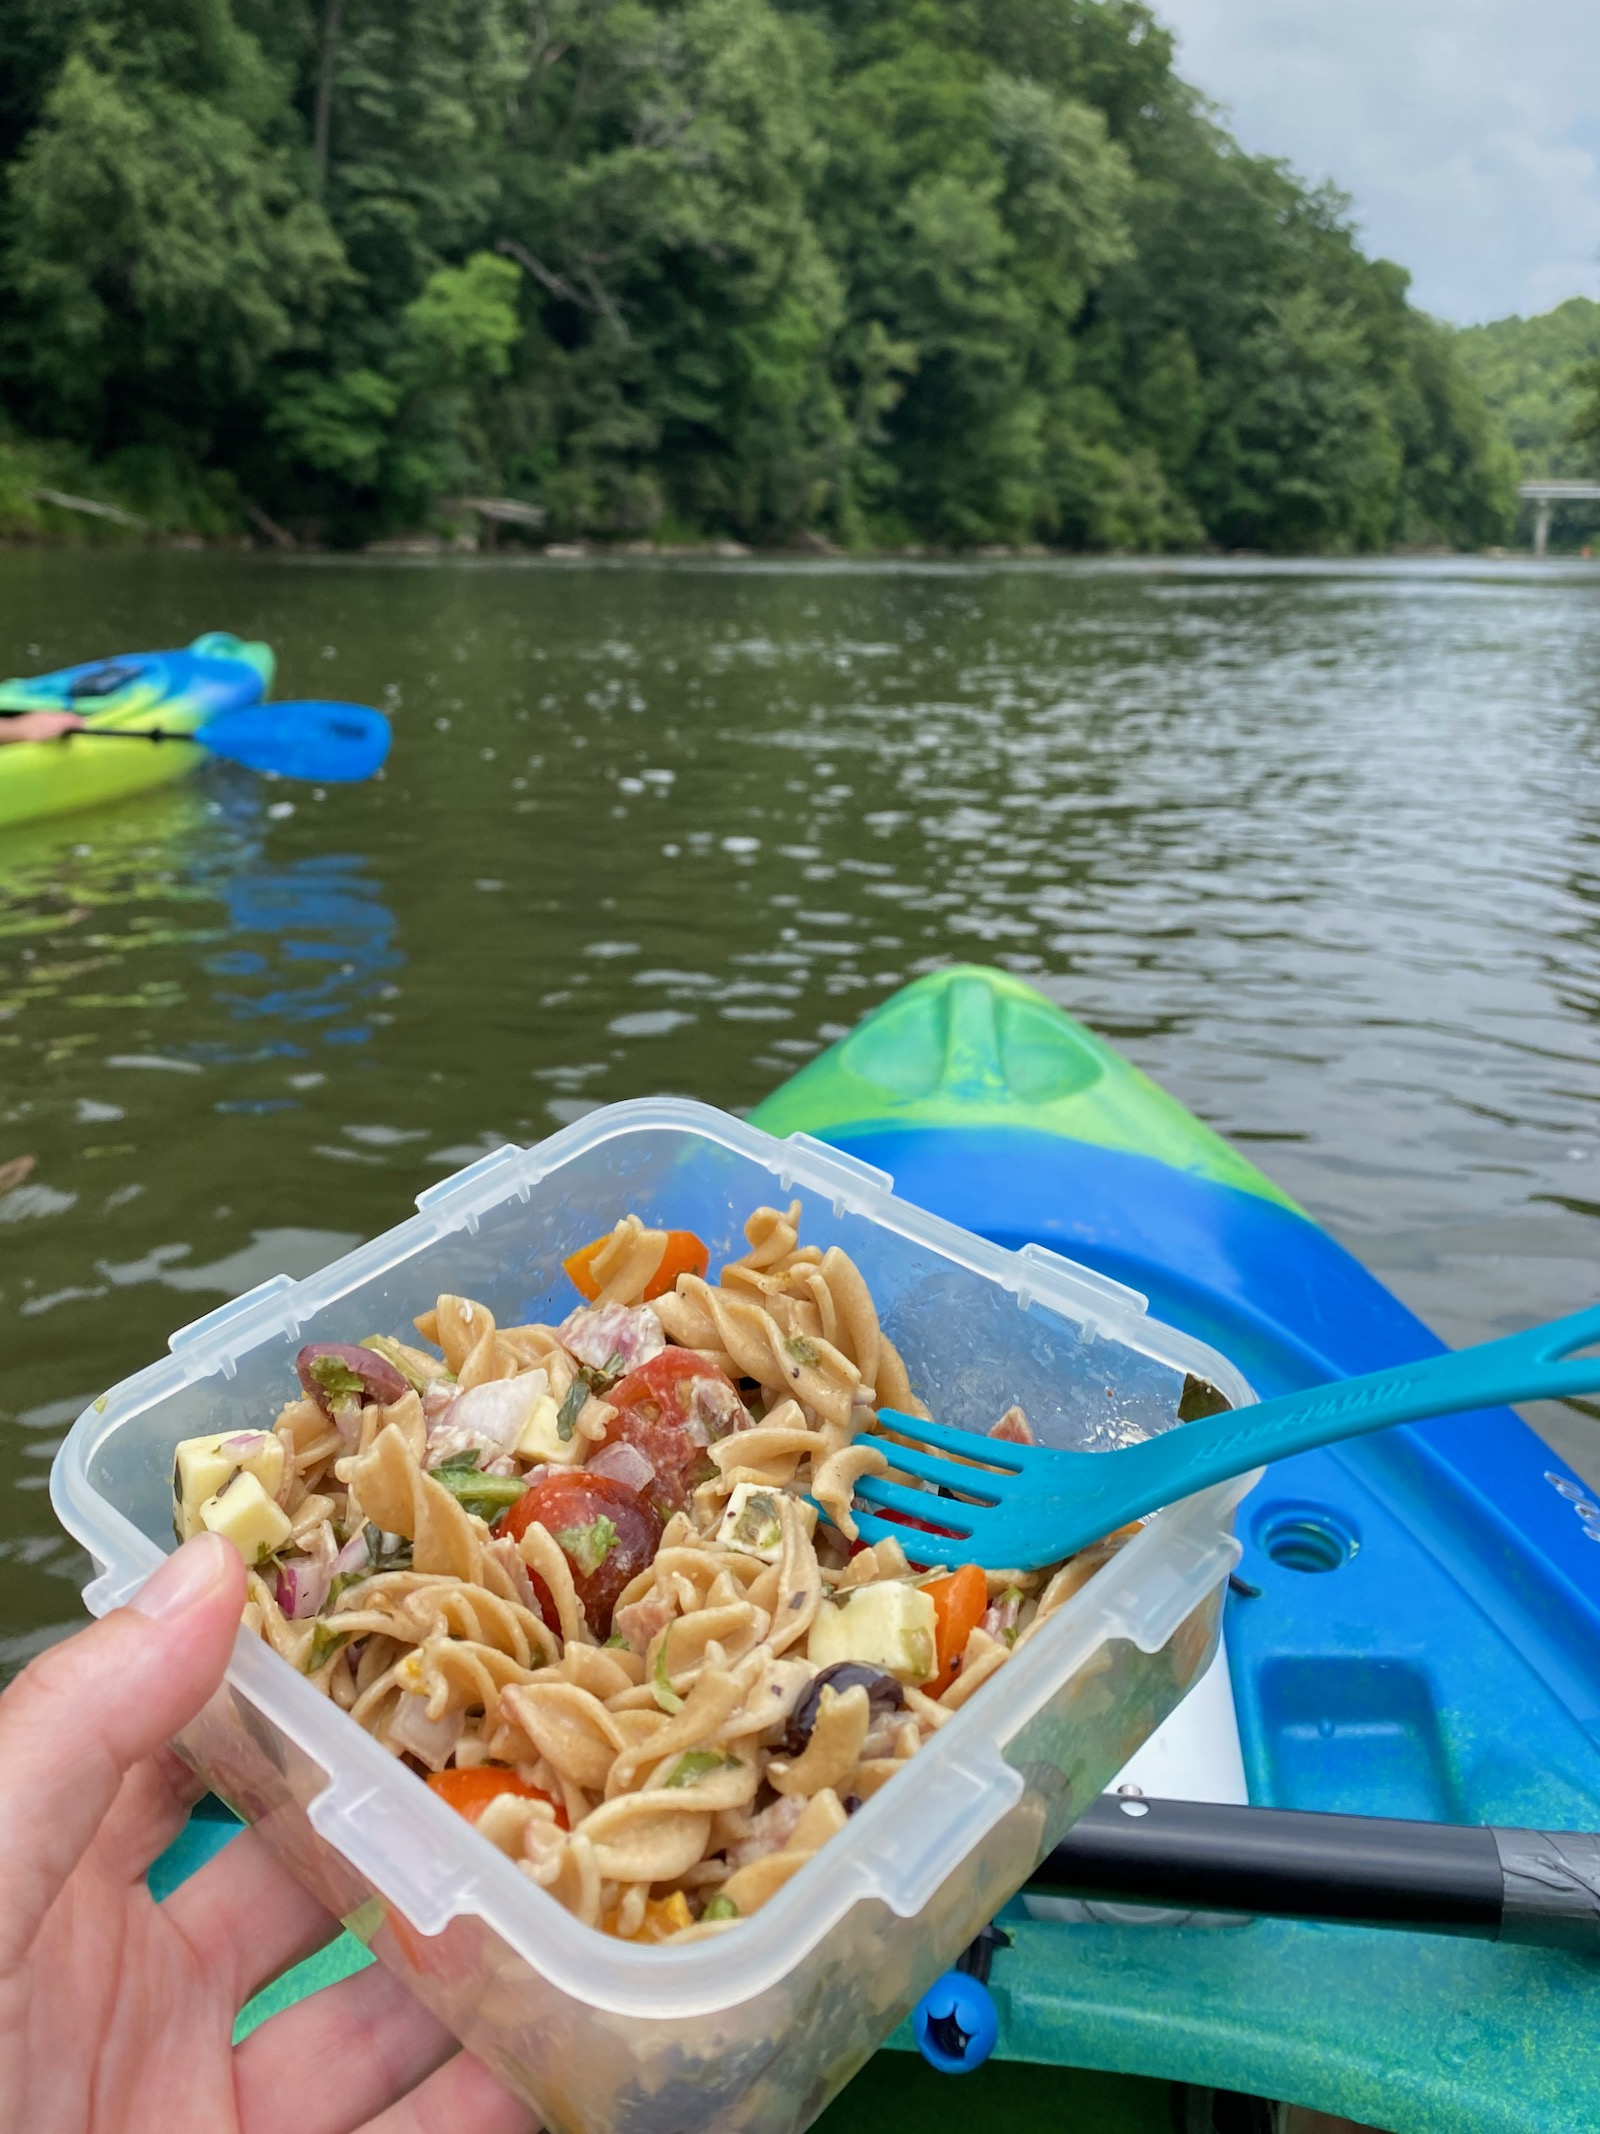 Holding a container of pasta salad while sitting in a kayak on the water from a persons viewpoint.